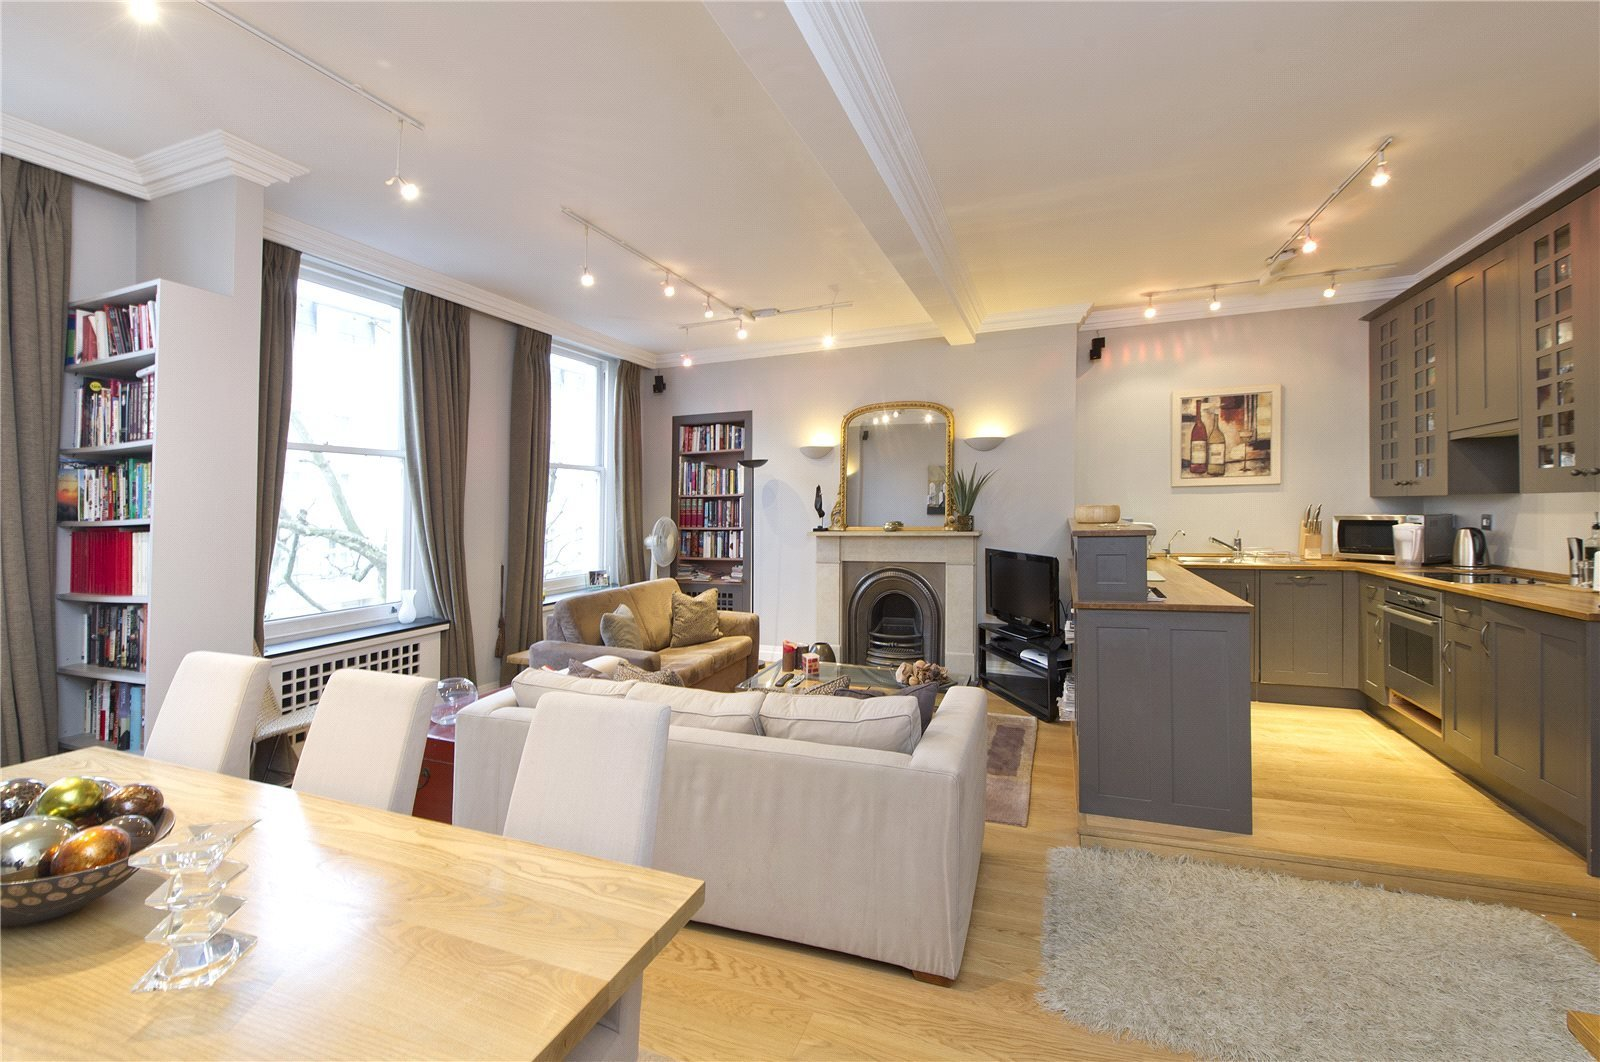 Best 1 Bedroom Flat For Sale In Queen S Gate South Kensington London Sw7 With Pictures Original 1024 x 768